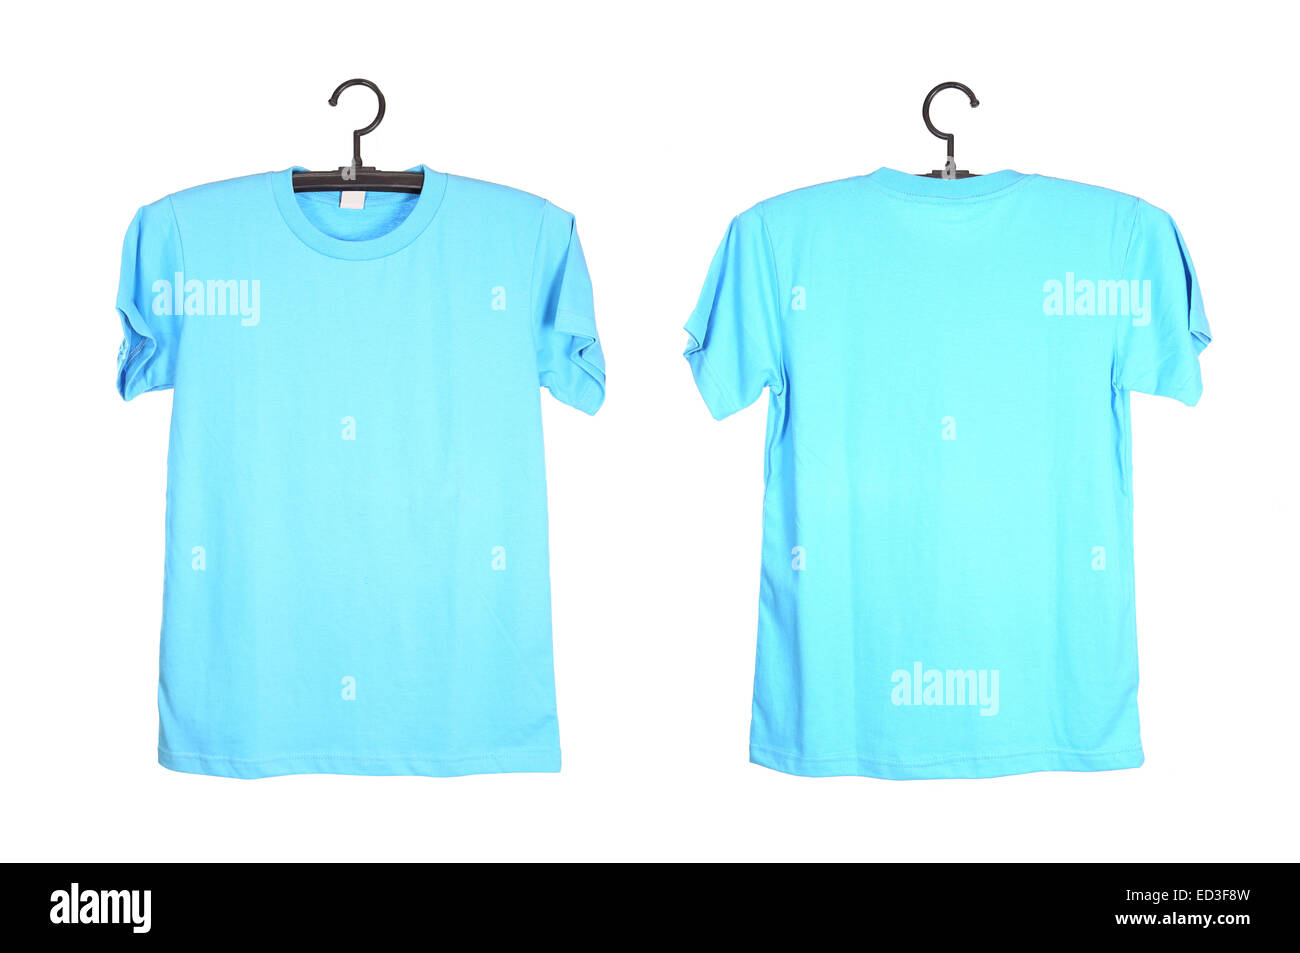 Blue T Shirt Template On Hanger Isolated On White Background Stock